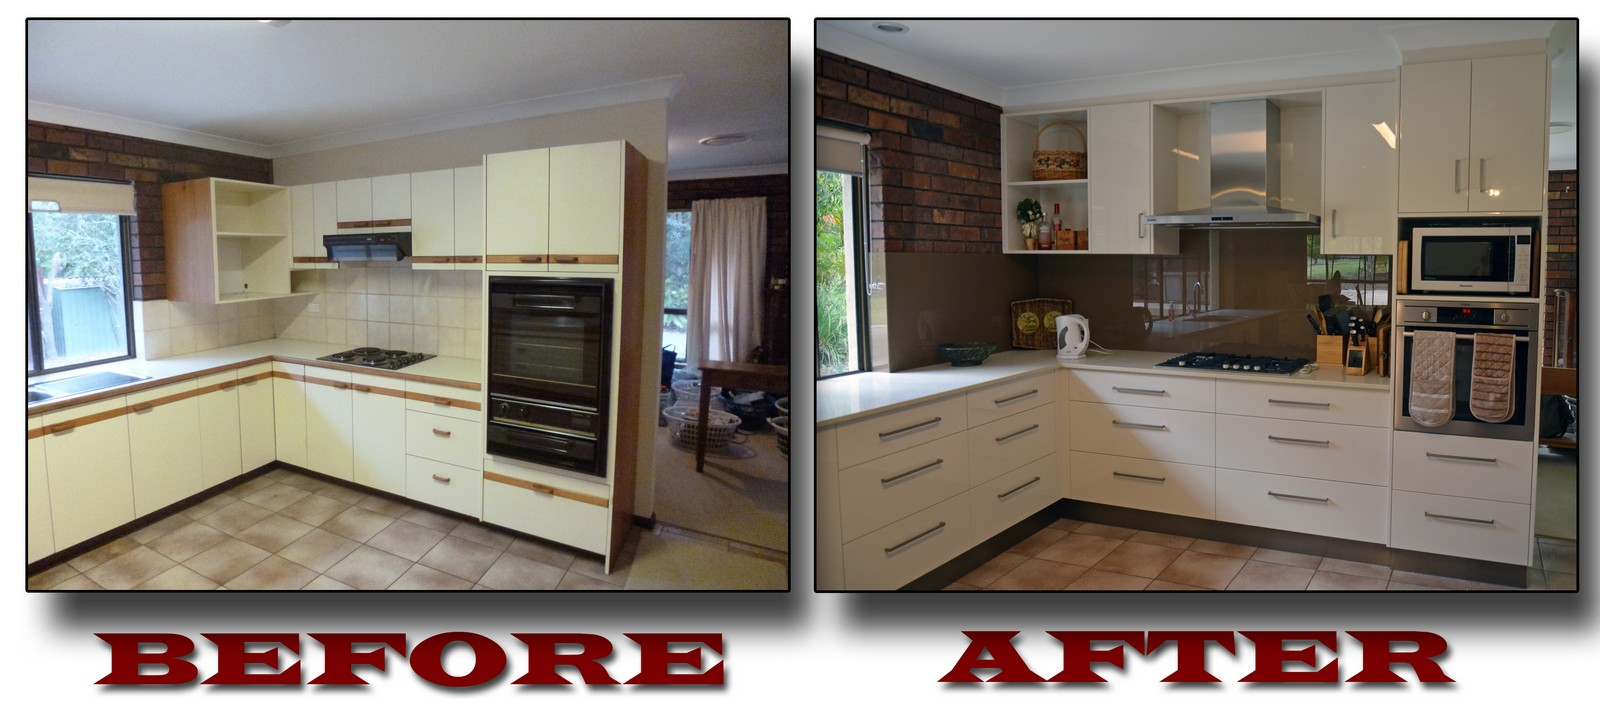 Kitchen Renovation Before And After - ACNN DECOR